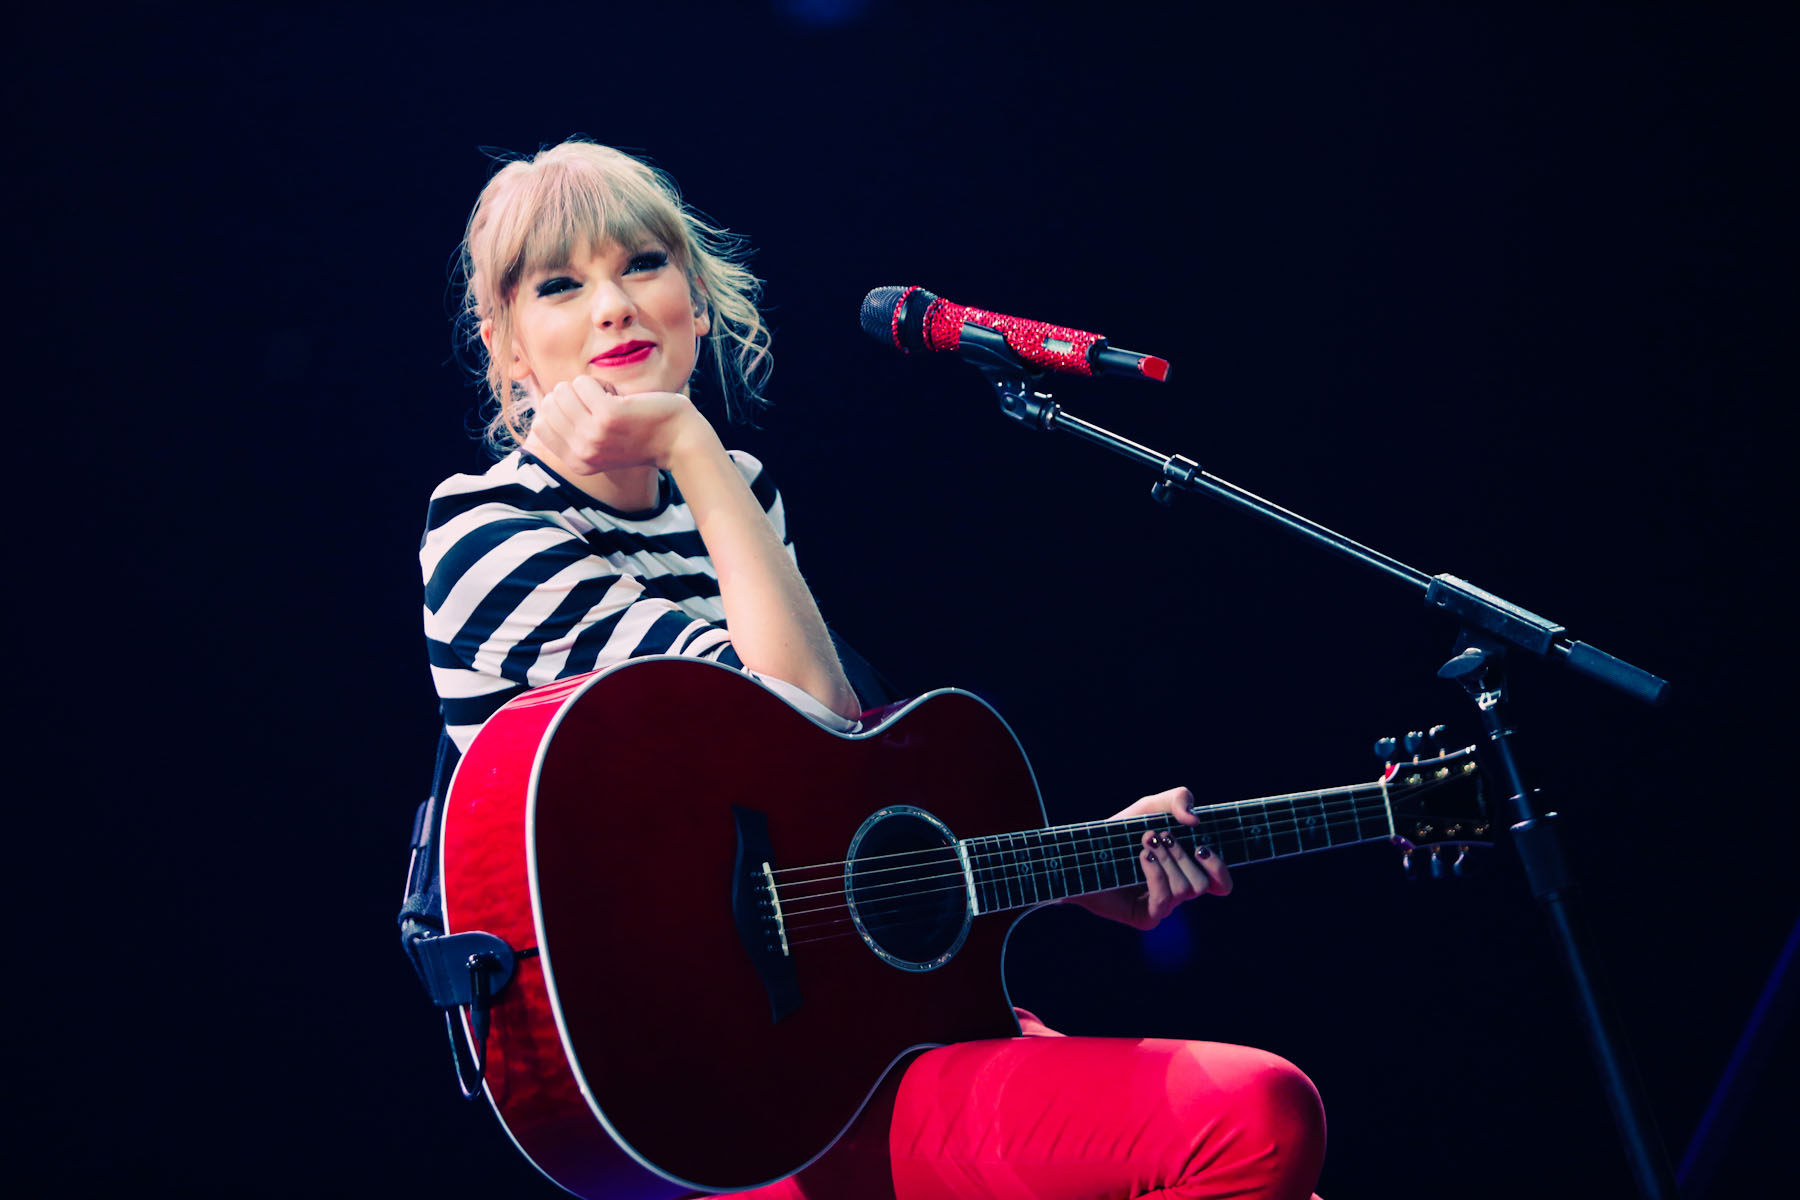 Taylor Swift Wallpaper And Background Image